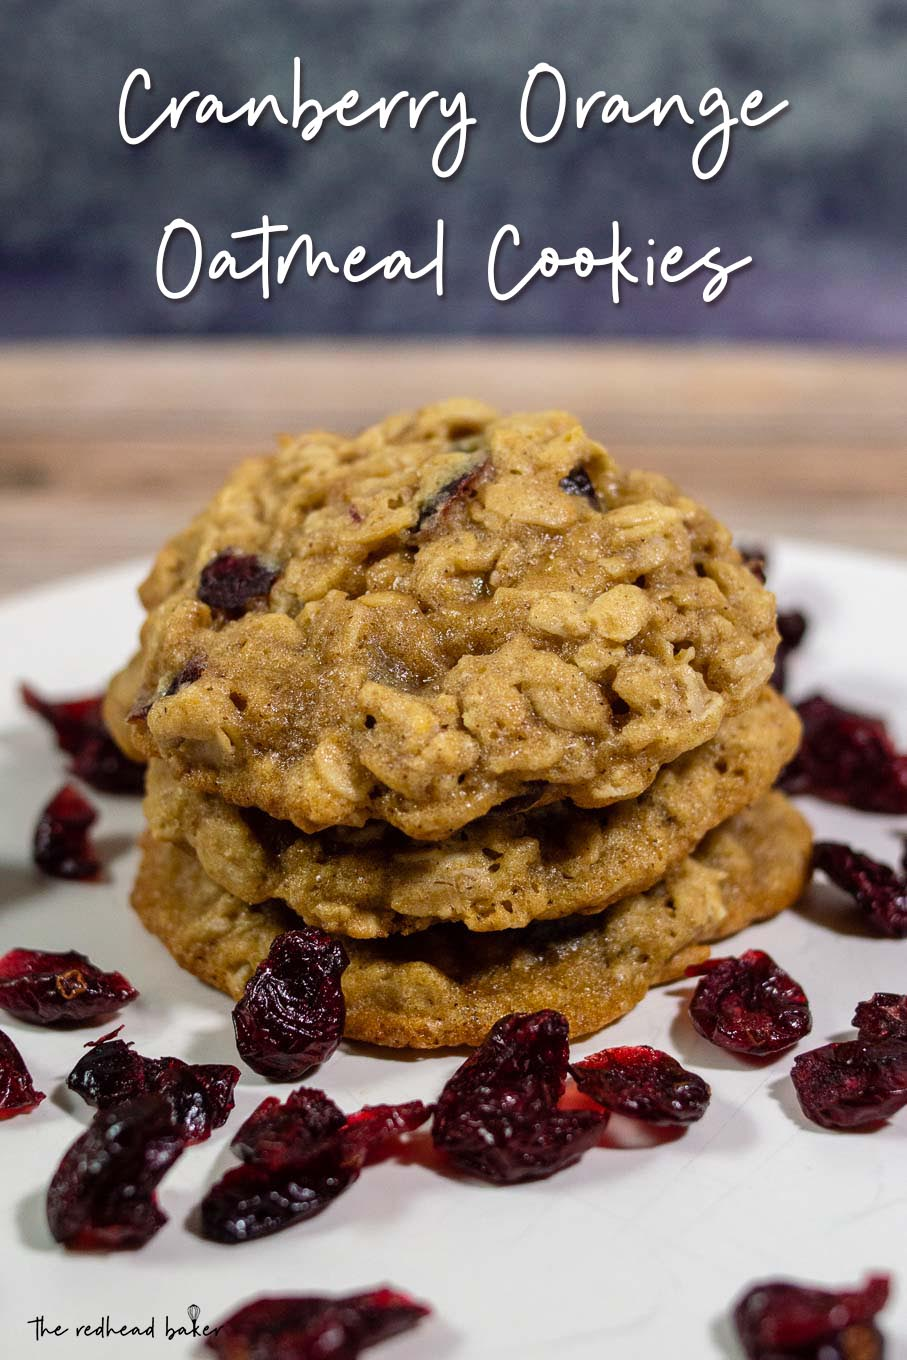 Three cranberry-orange oatmeal cookies in a stack surrounded by dried cranberries